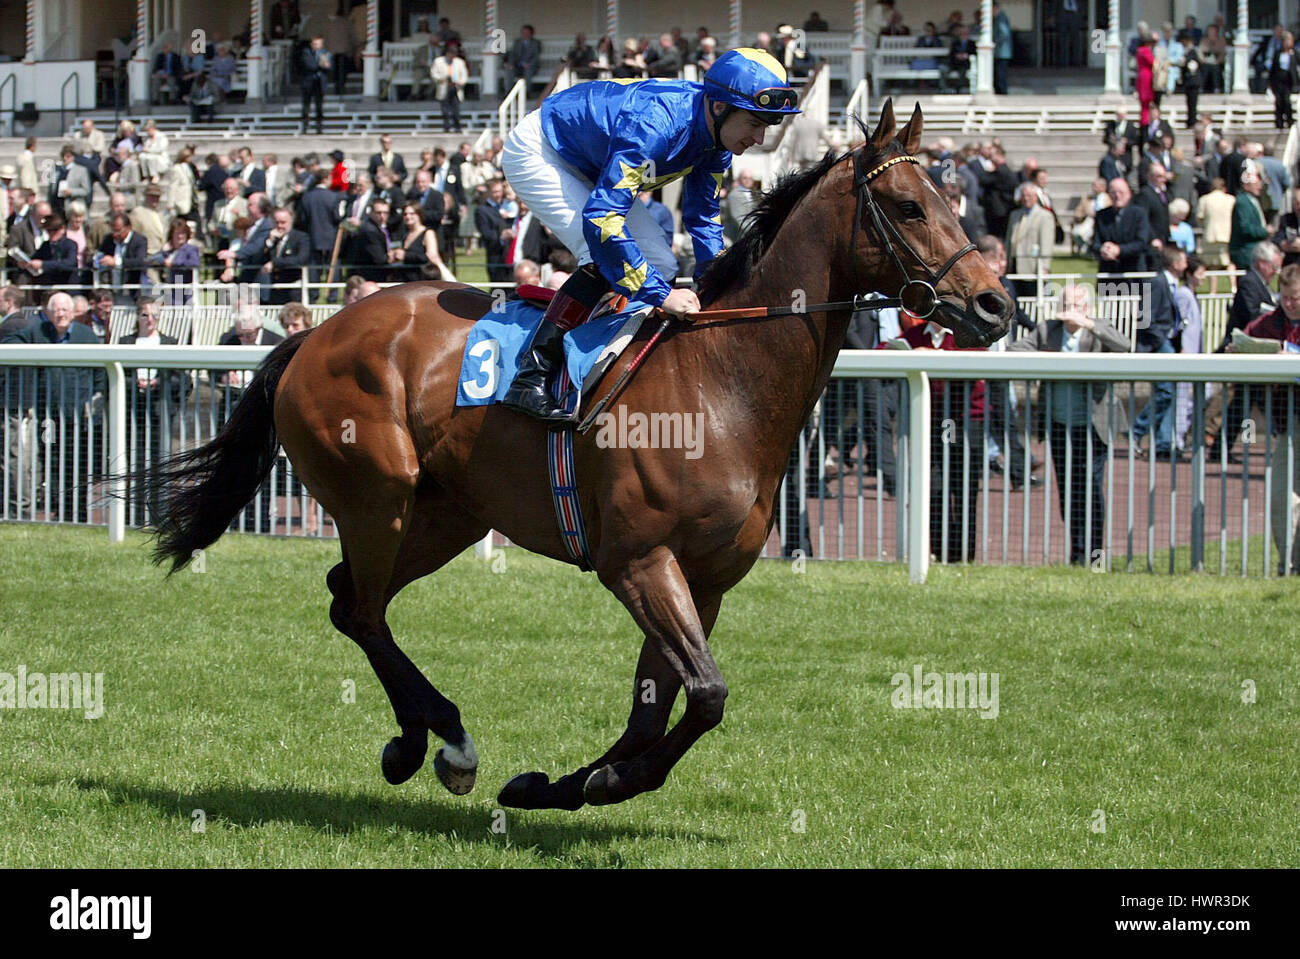 BORDER SUBJECT RIDDEN BY S.DROWNE YORK RACECOURSE YORK ENGLAND 14 May 2003 - Stock Image